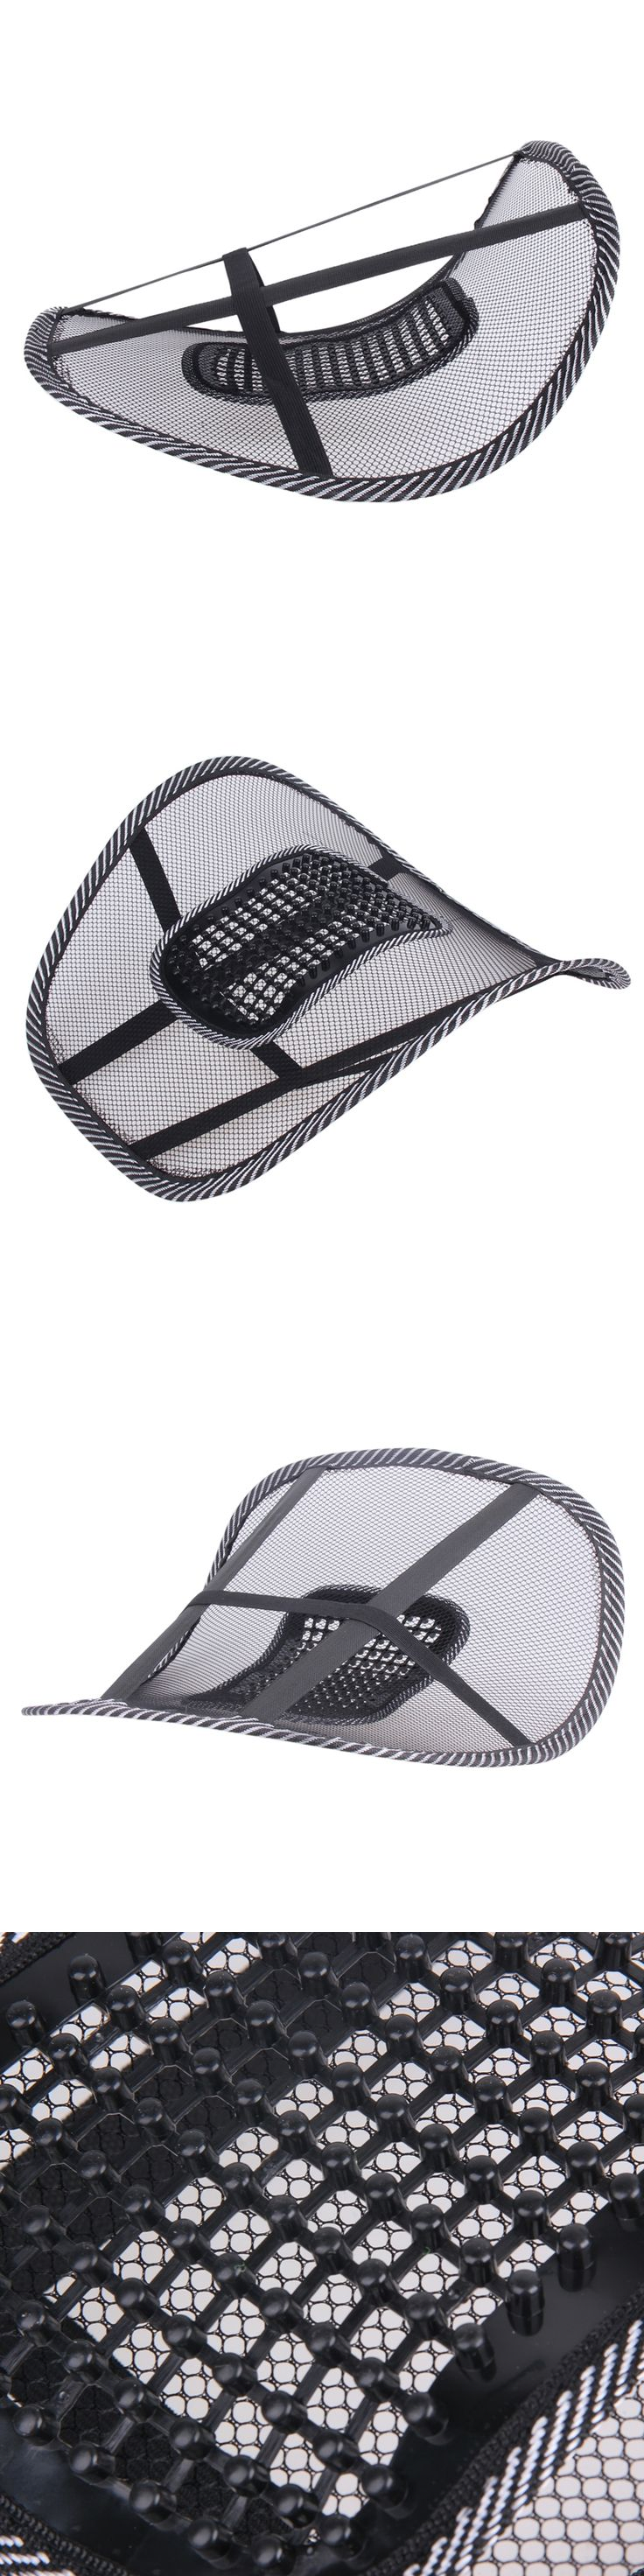 Car Seat Cushion Lumbar Waist Back Support For Alpina B3 B4 B5 B6 B7 D3 D5 Roadster XD3 Maruti 800 Alto Baleno Esteem Gypsy Zen